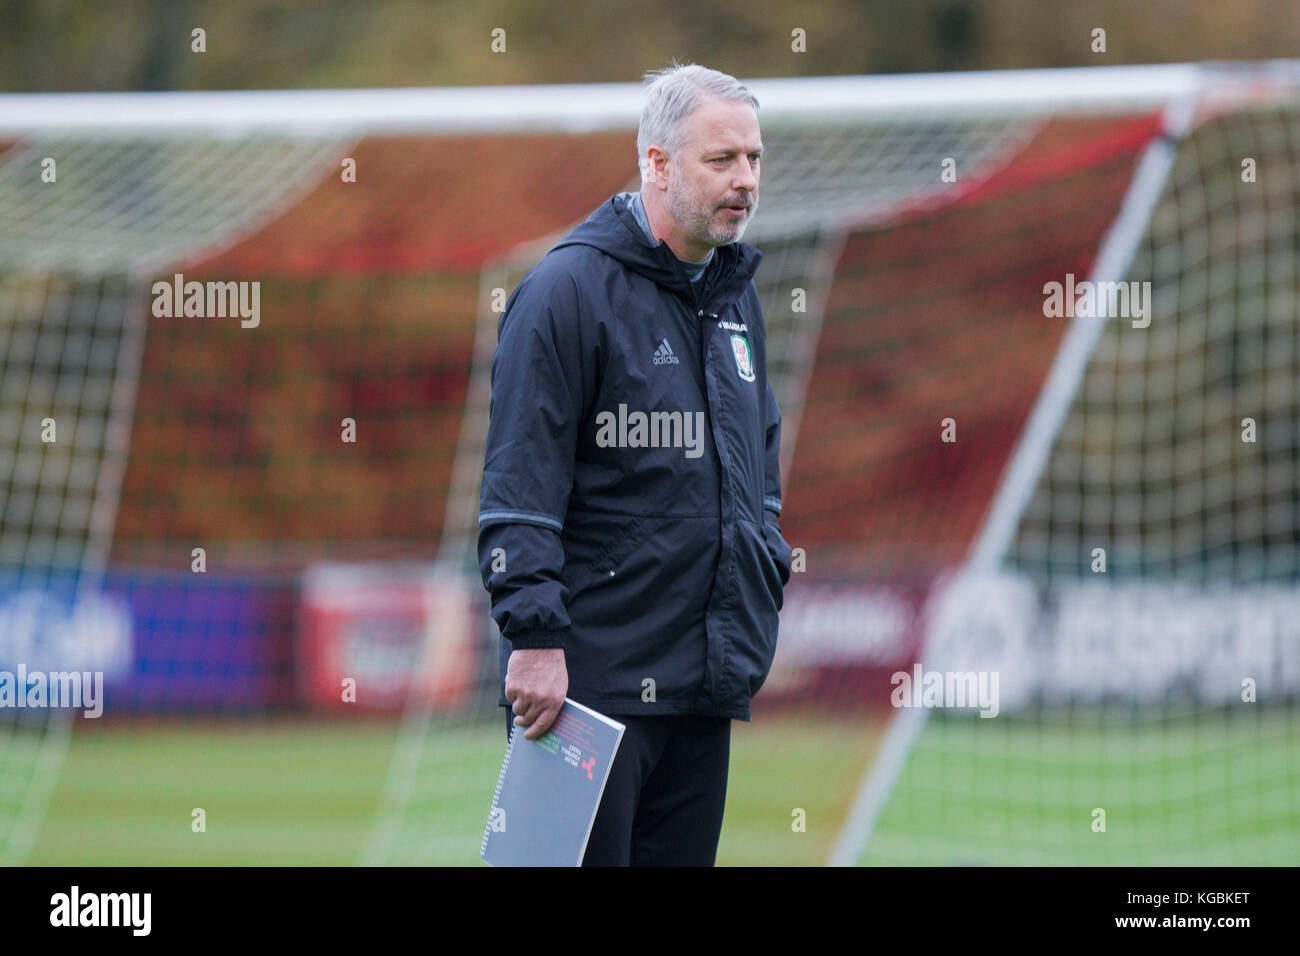 the best attitude 70a73 ad673 Hensol, Wales, UK. 6th November 2017. Wales coach Kit Symons ...